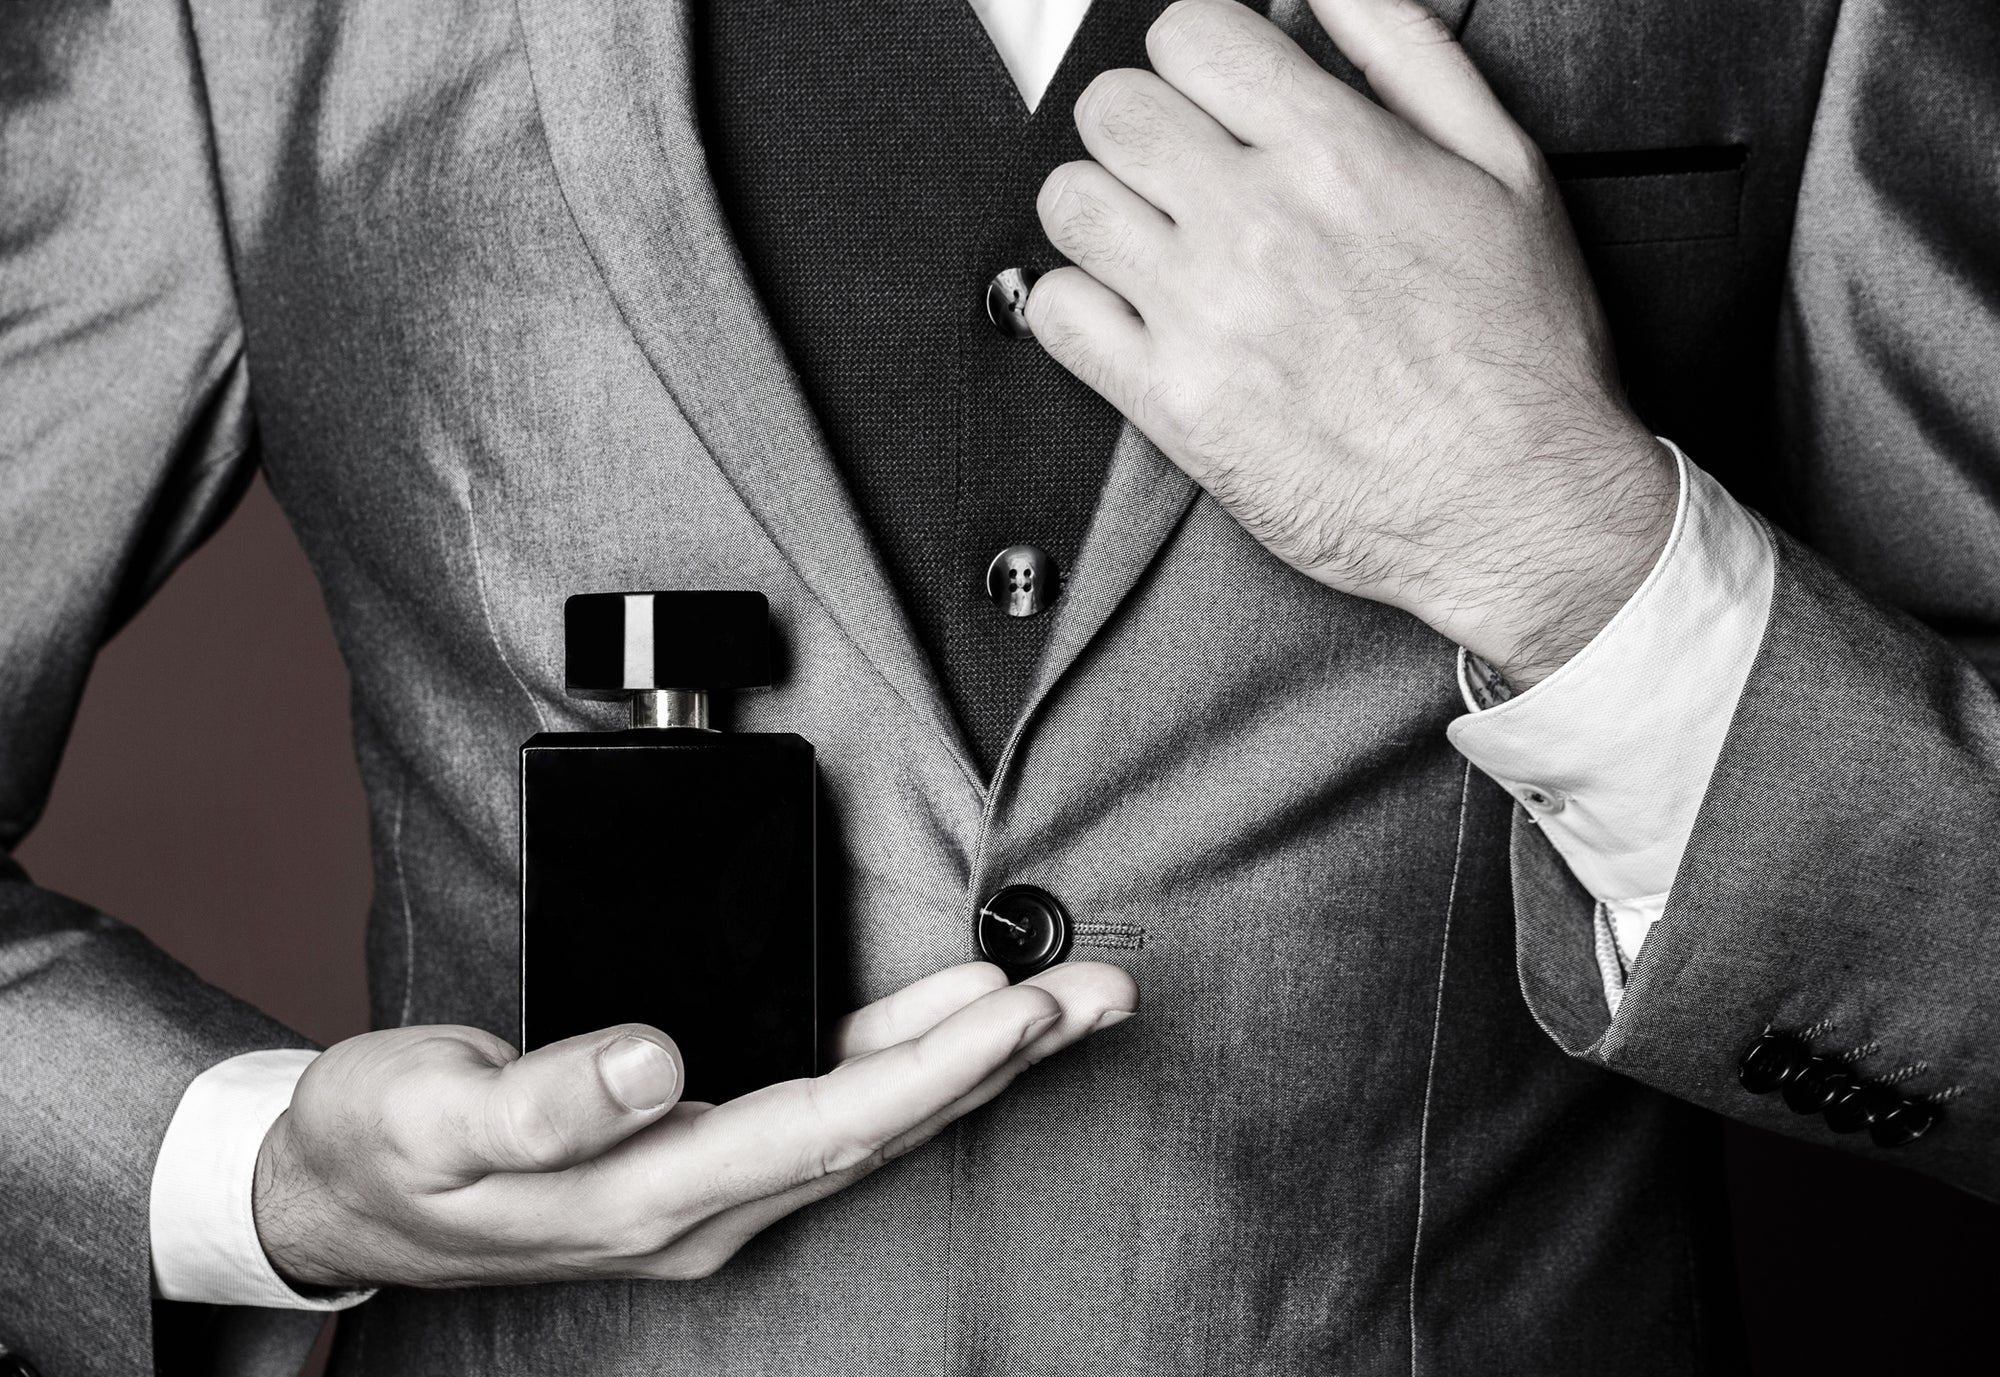 The 5 Masculine Scents That Drive Women Wild